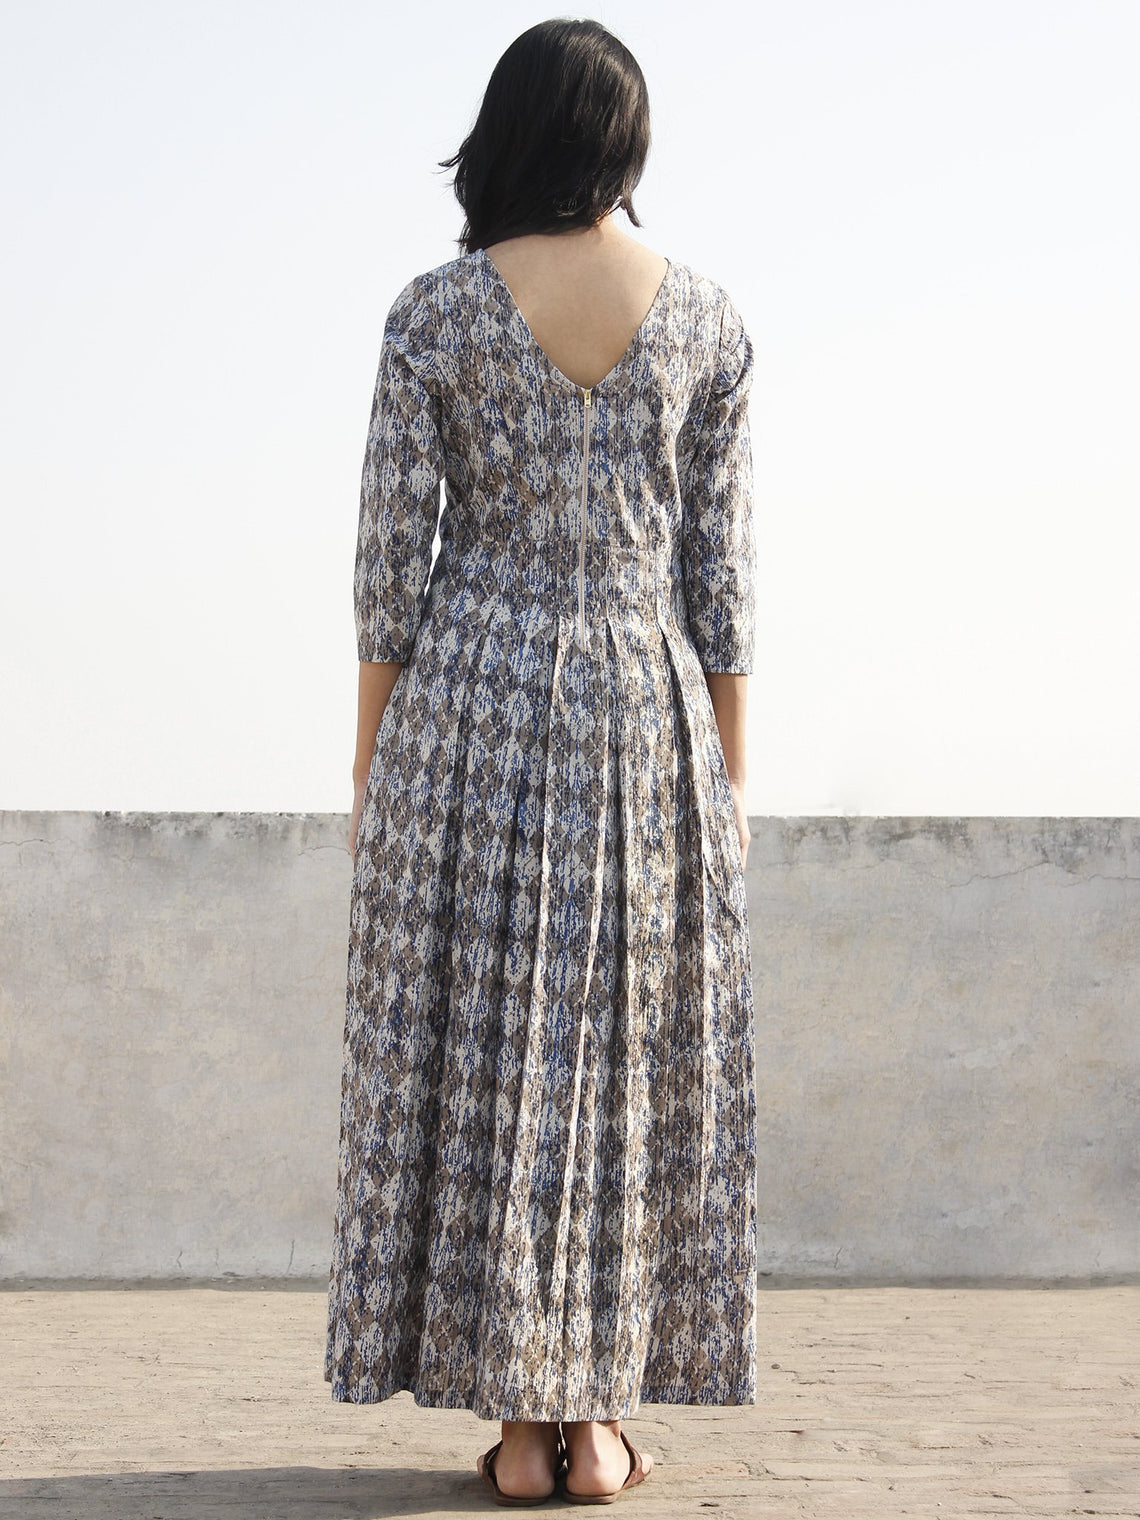 Grey Indigo White Long Hand Block Printed Cotton Dress With Box Pleats & Back Zipper  - D167F1111